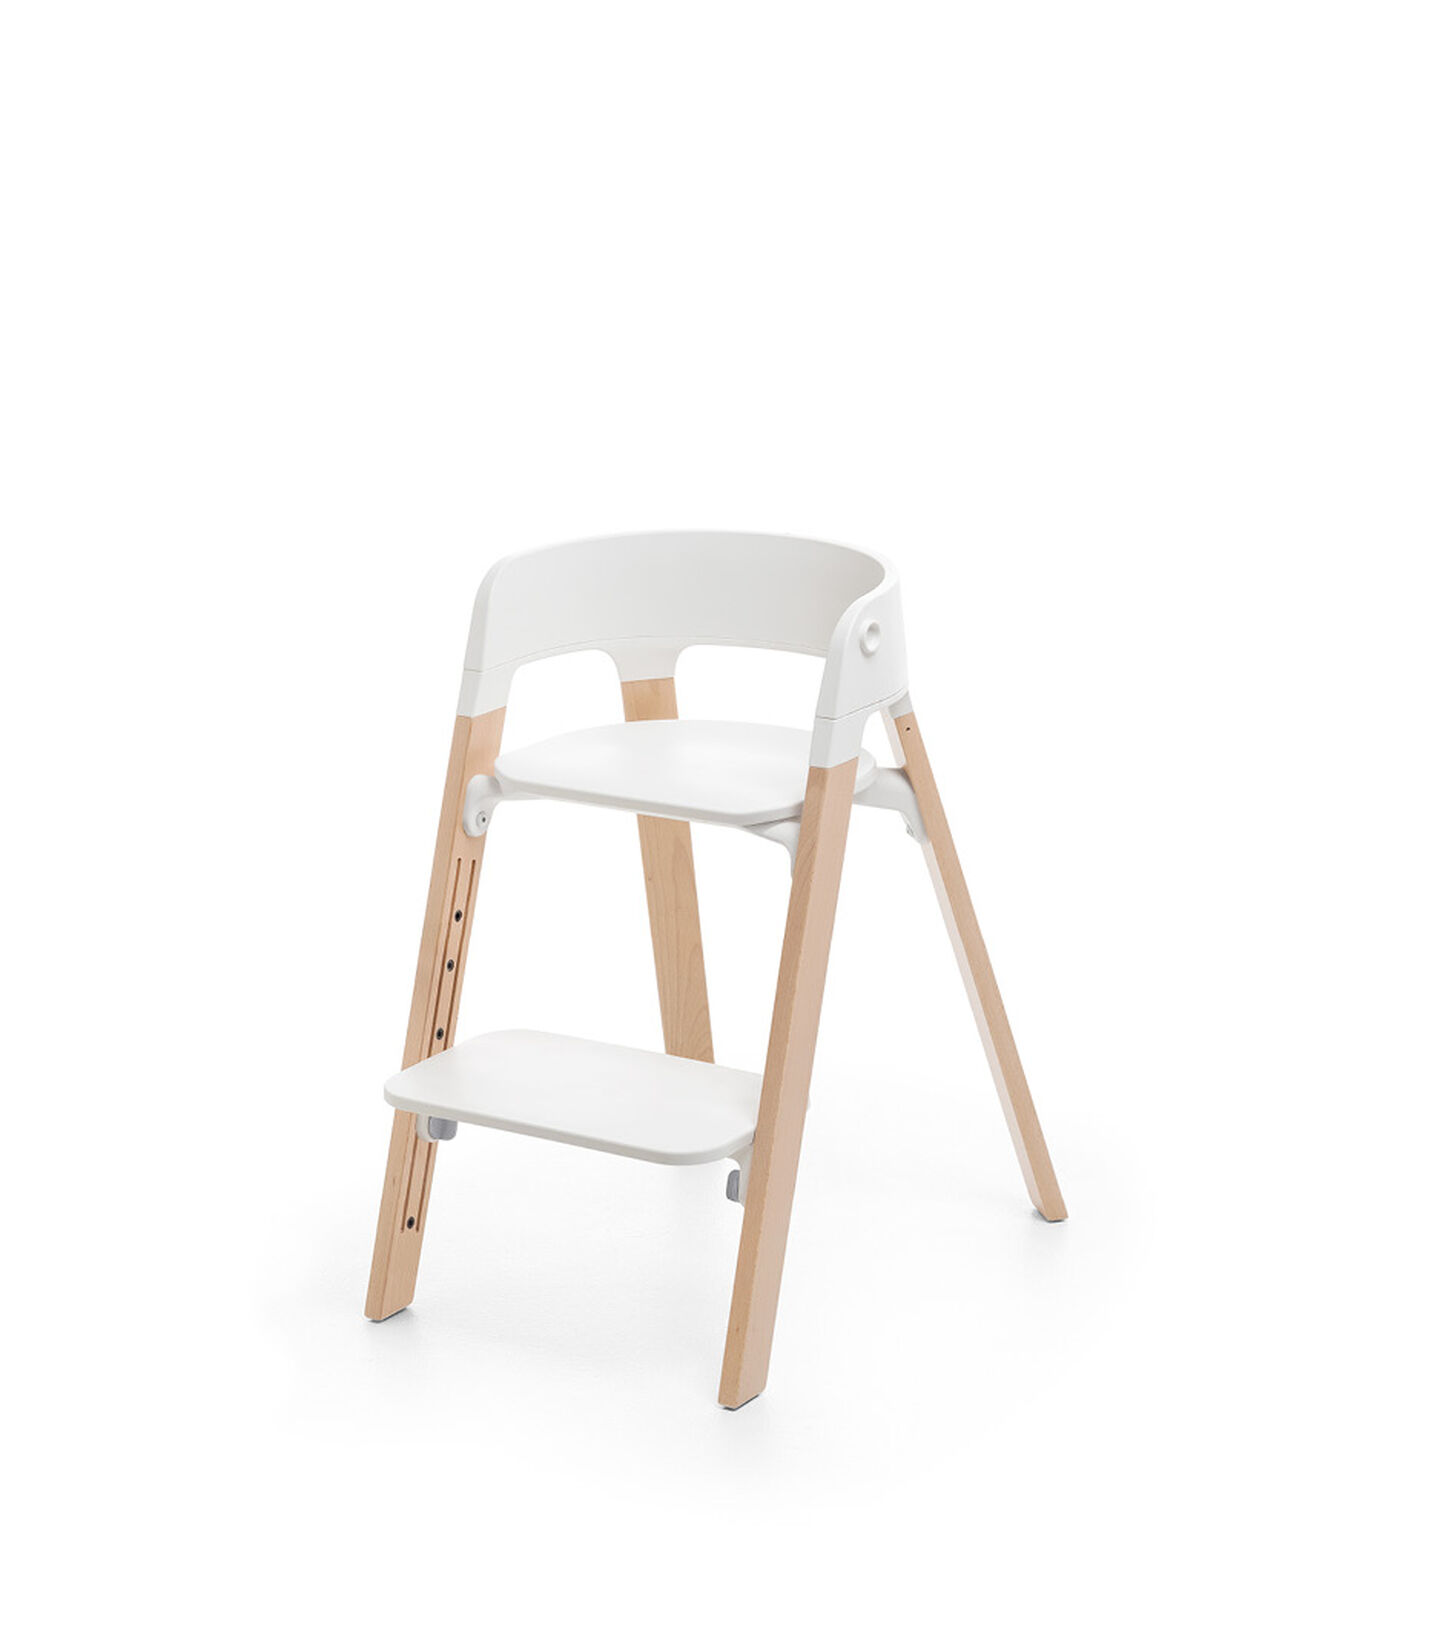 Stokke® Steps™ Stoel Natural, White/Natural, mainview view 2